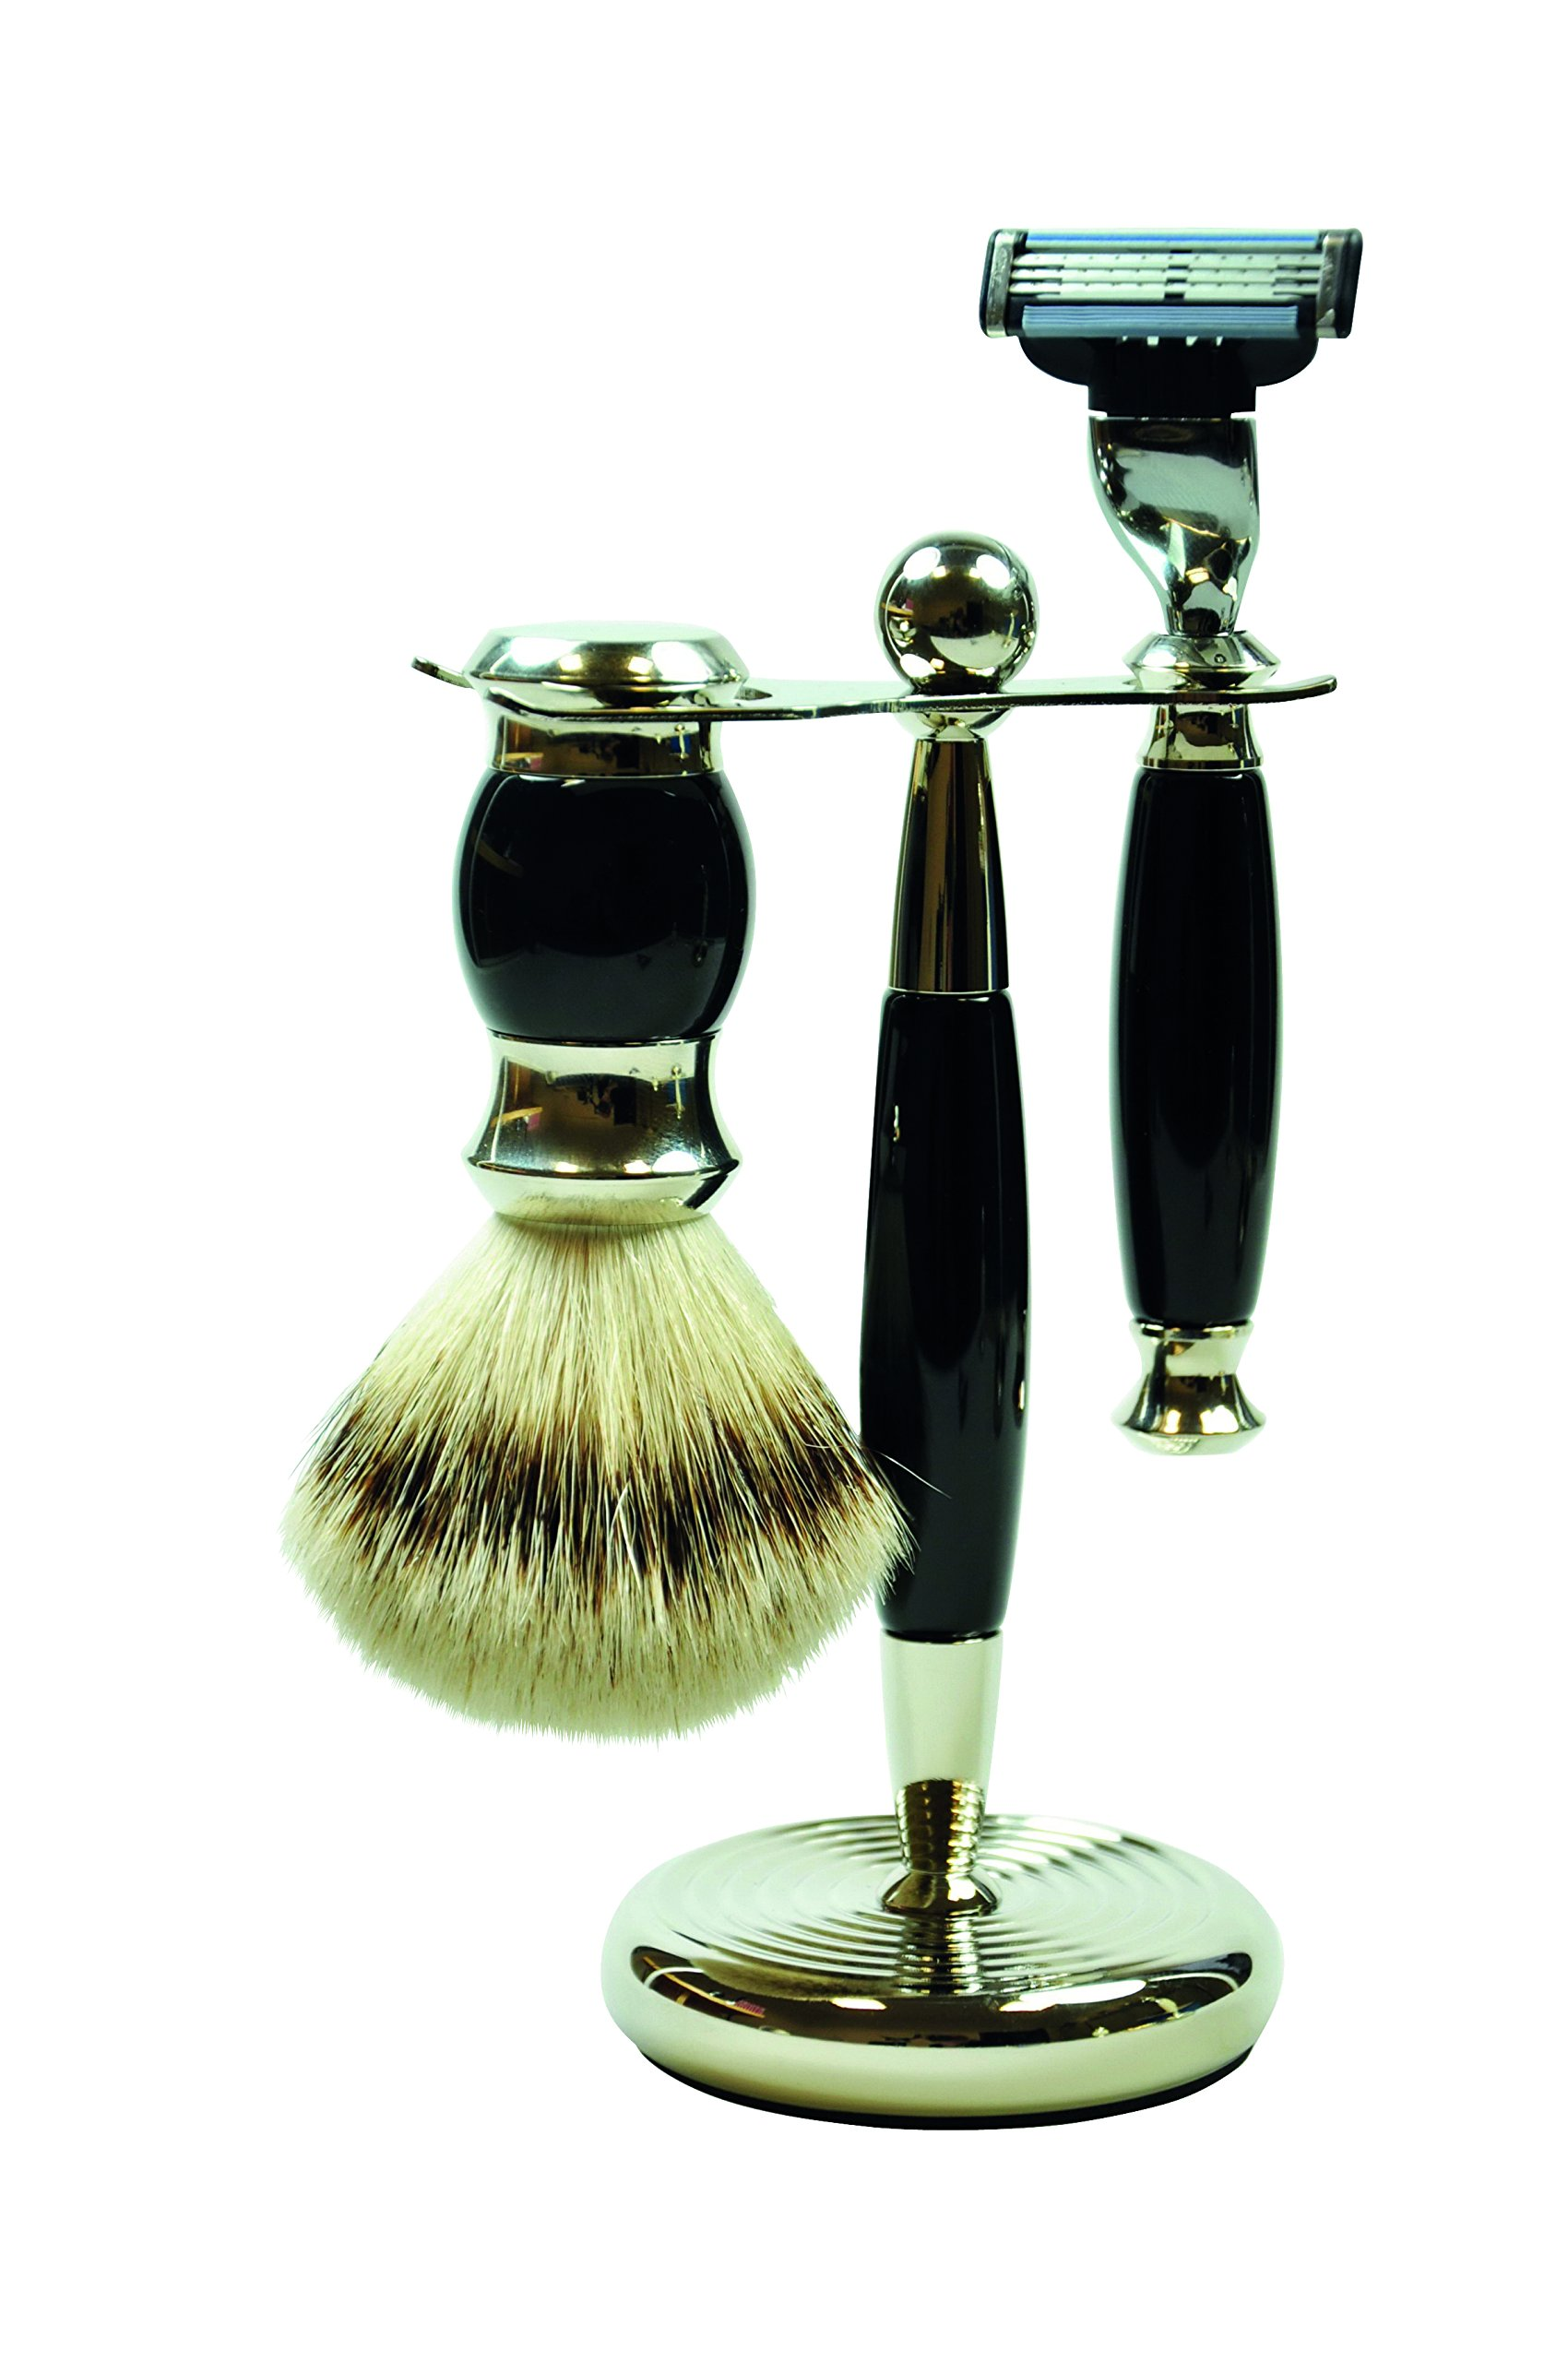 Pfeilring Germany Original Golddachs Vintage Shaving Set, Mach3 Razor Handle, Silvertip Badger Brush, Chrome Stand, 3 Piece